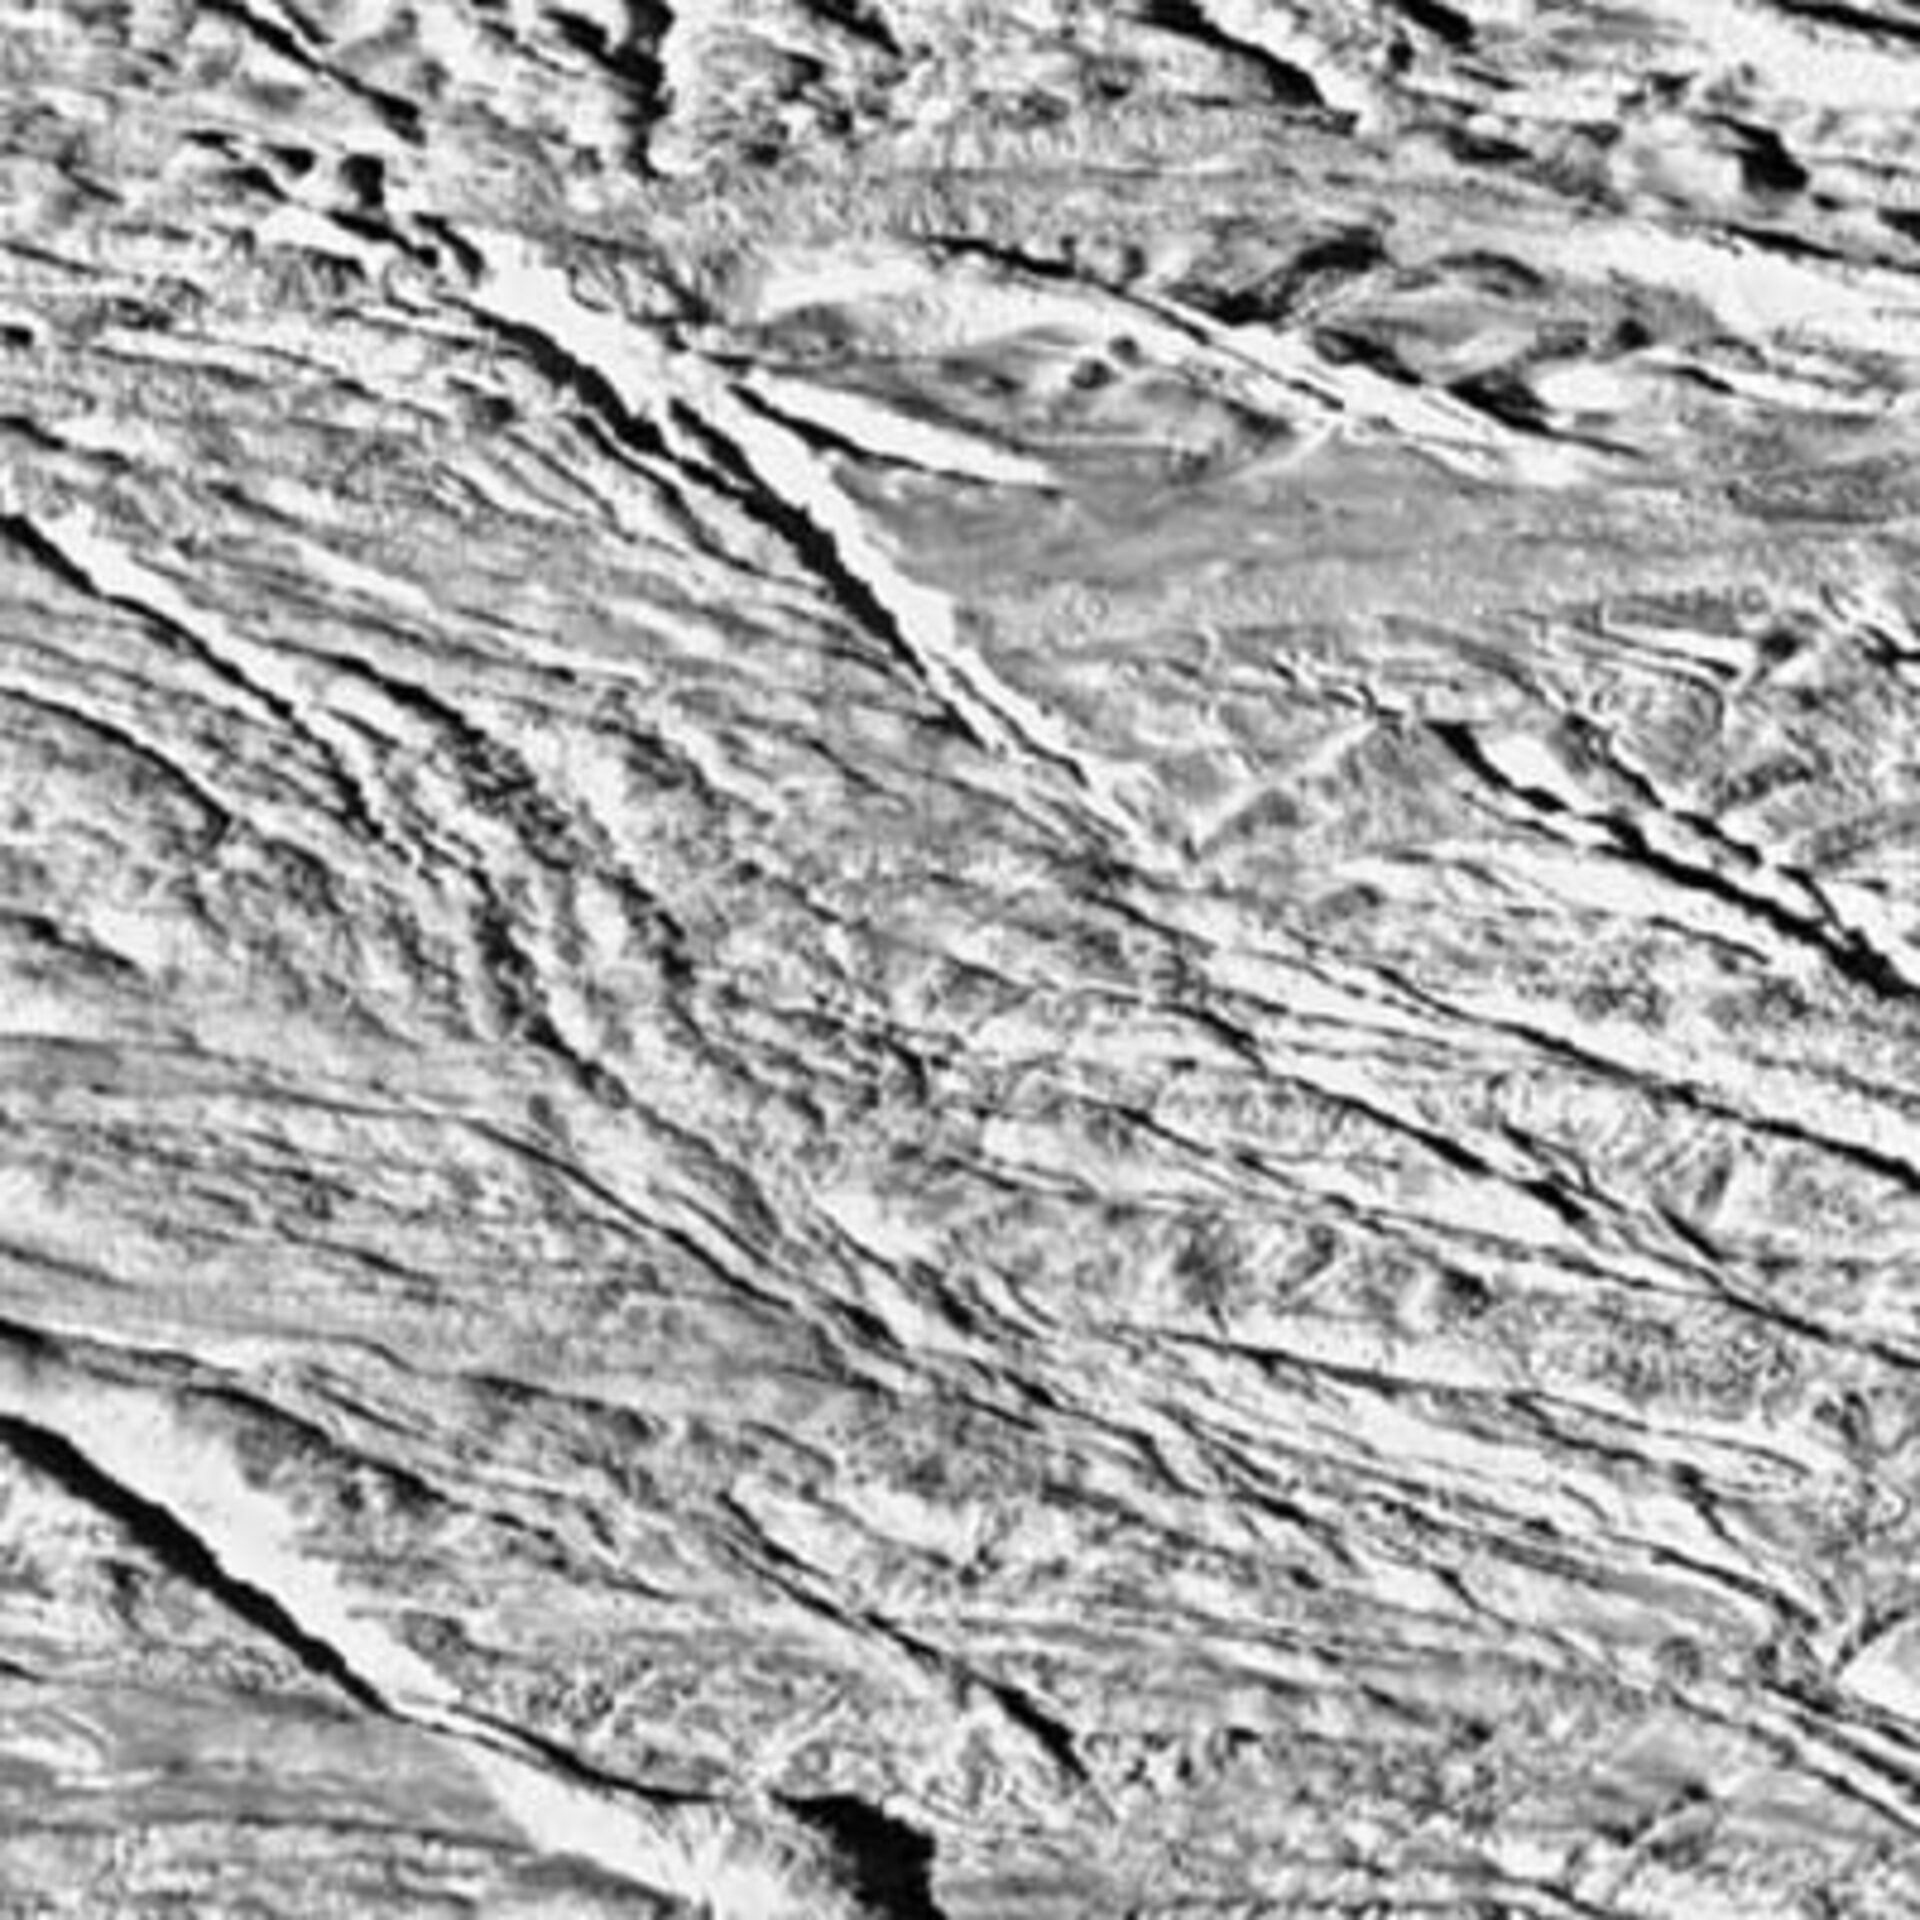 Wide-angle camera view of surface of Enceladus